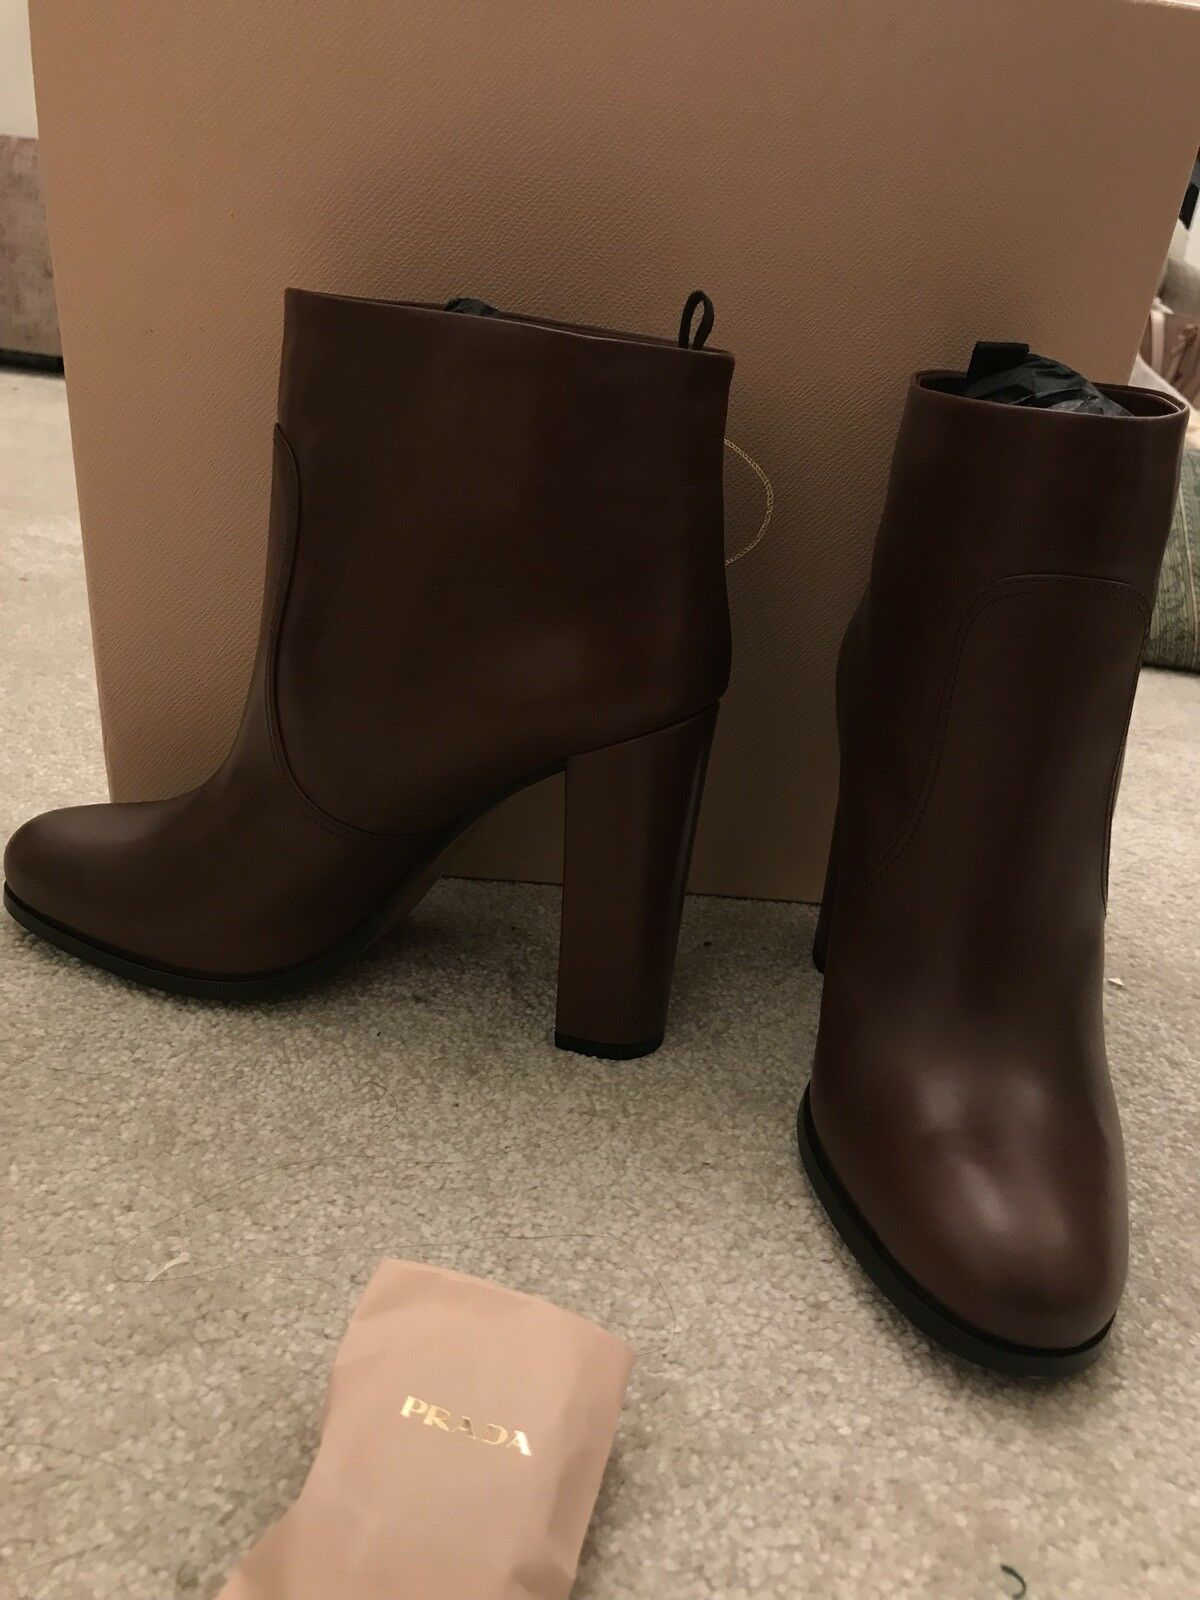 Grandes zapatos con descuento Prada Boots 100% authentic brand new brown heeled boots